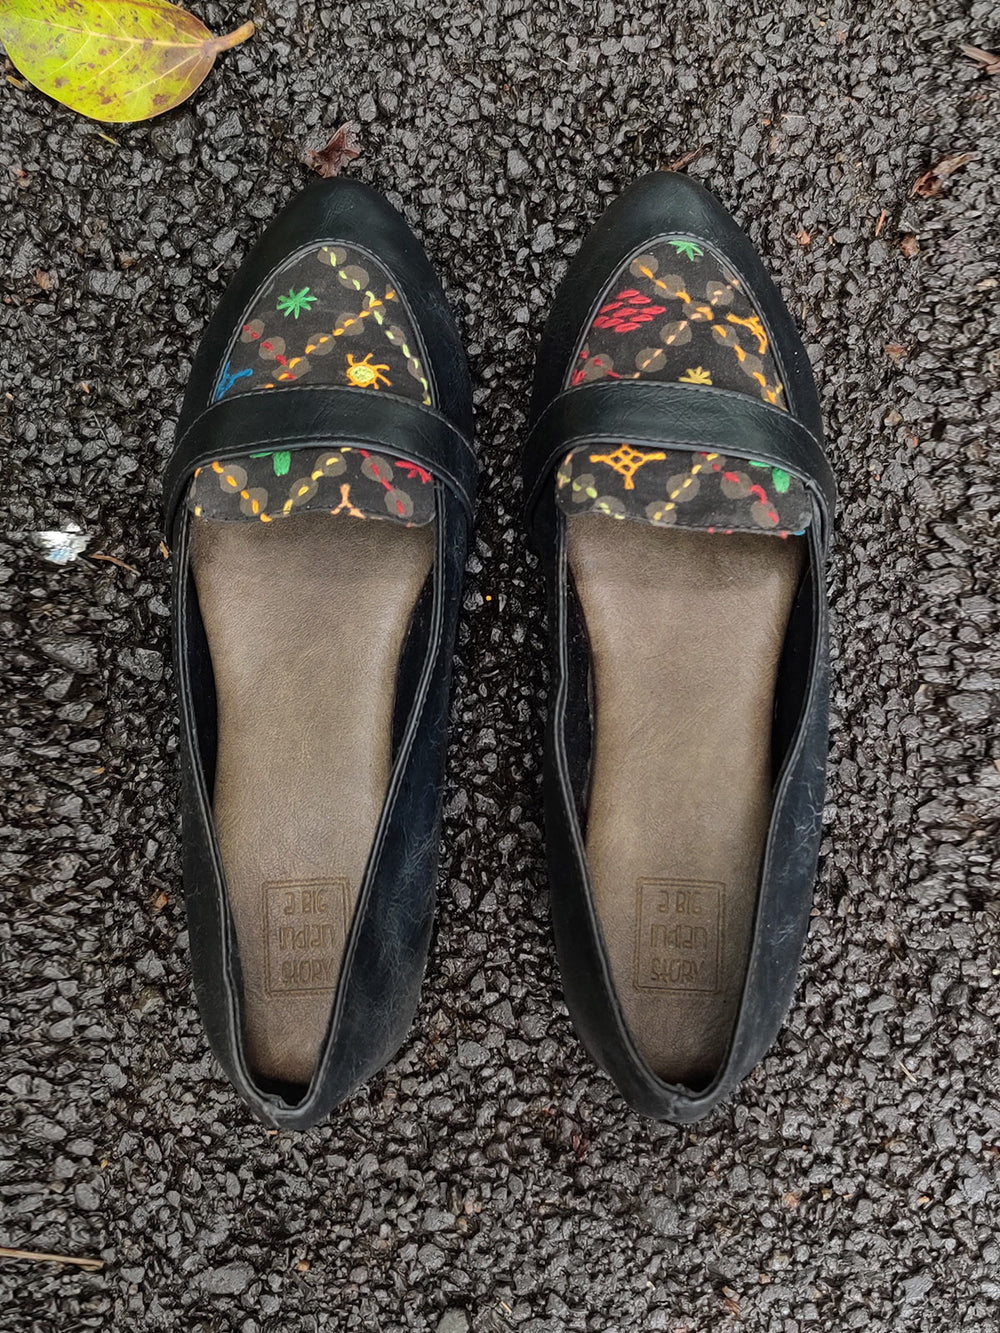 Lambani Embroidered Loafers - New!